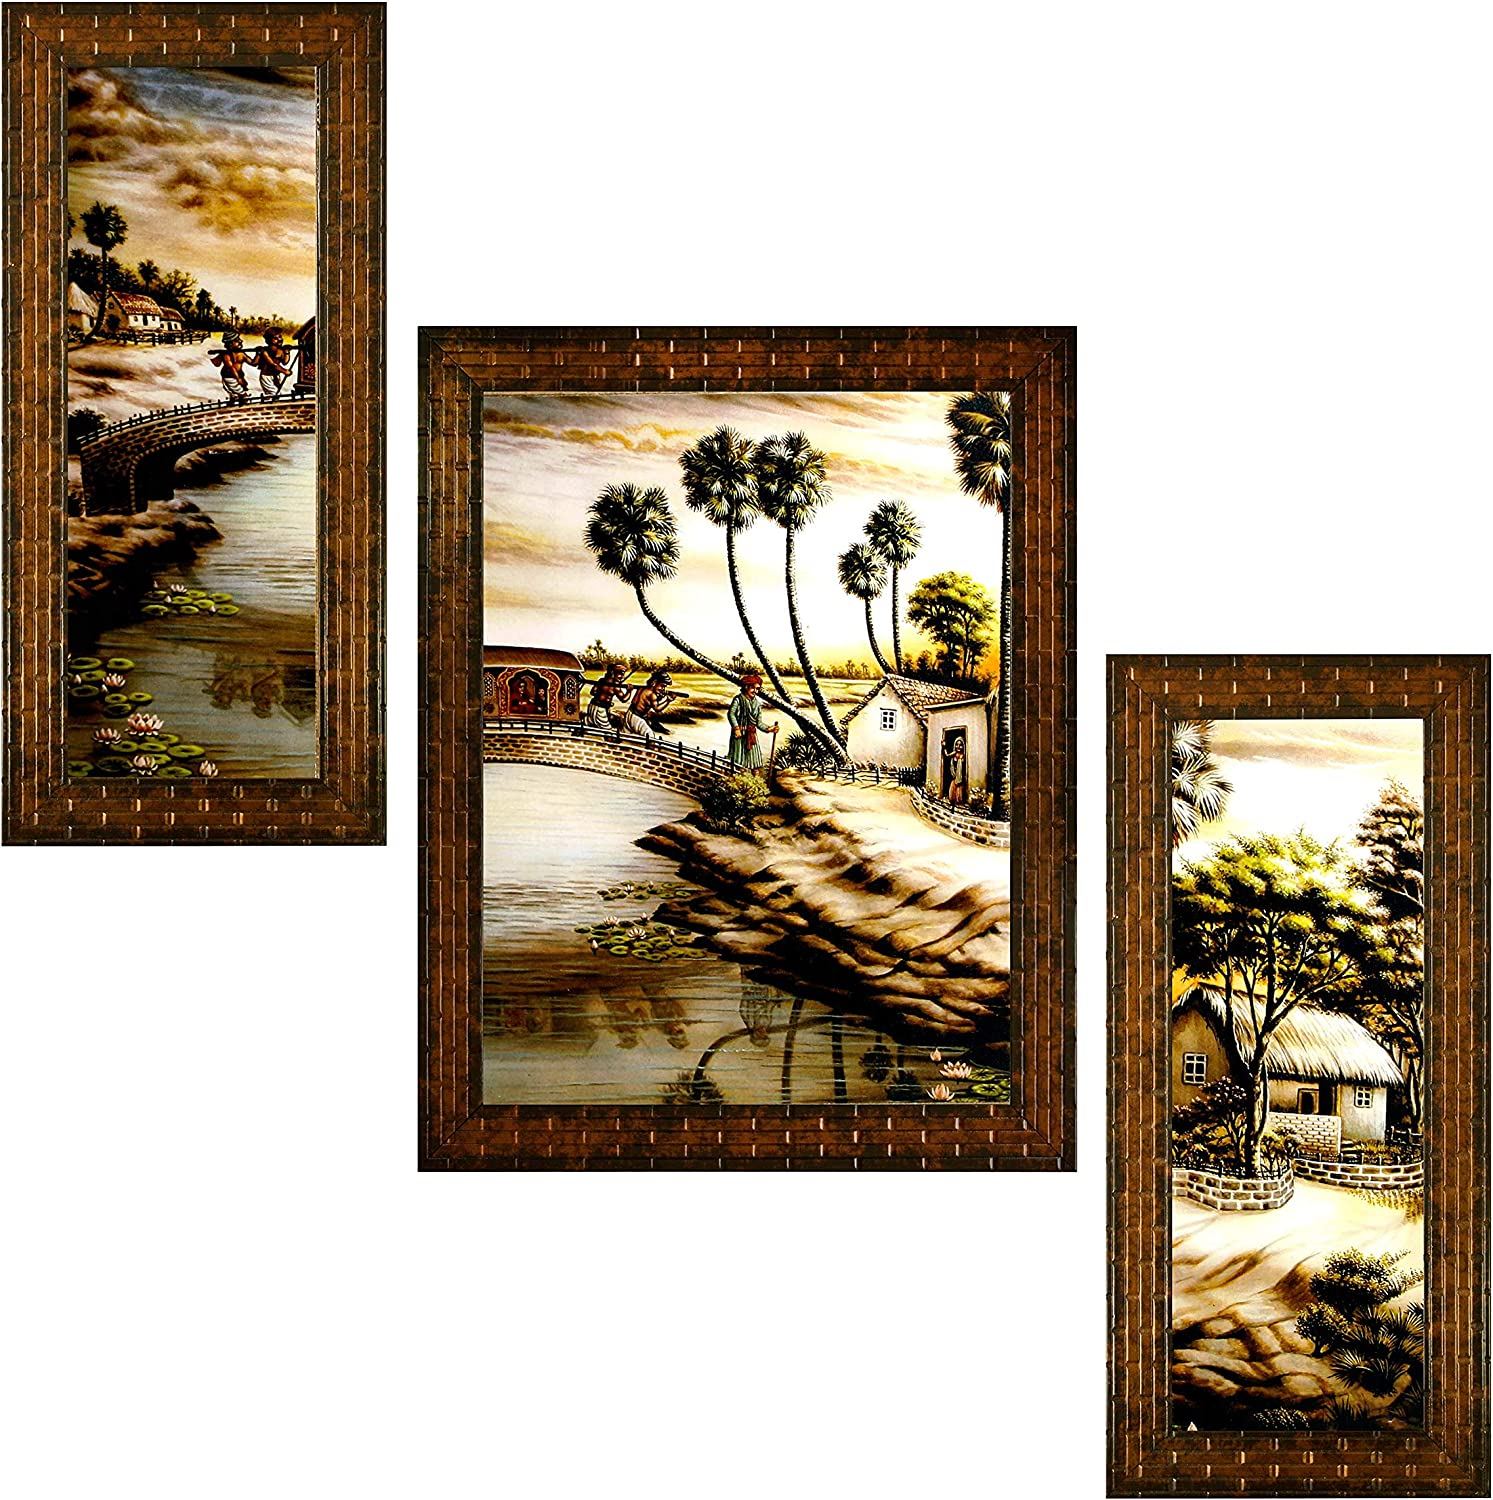 Indianara Sale special Limited time trial price price Set of 3 Village Paintings 6 13 X Without Glass 2561